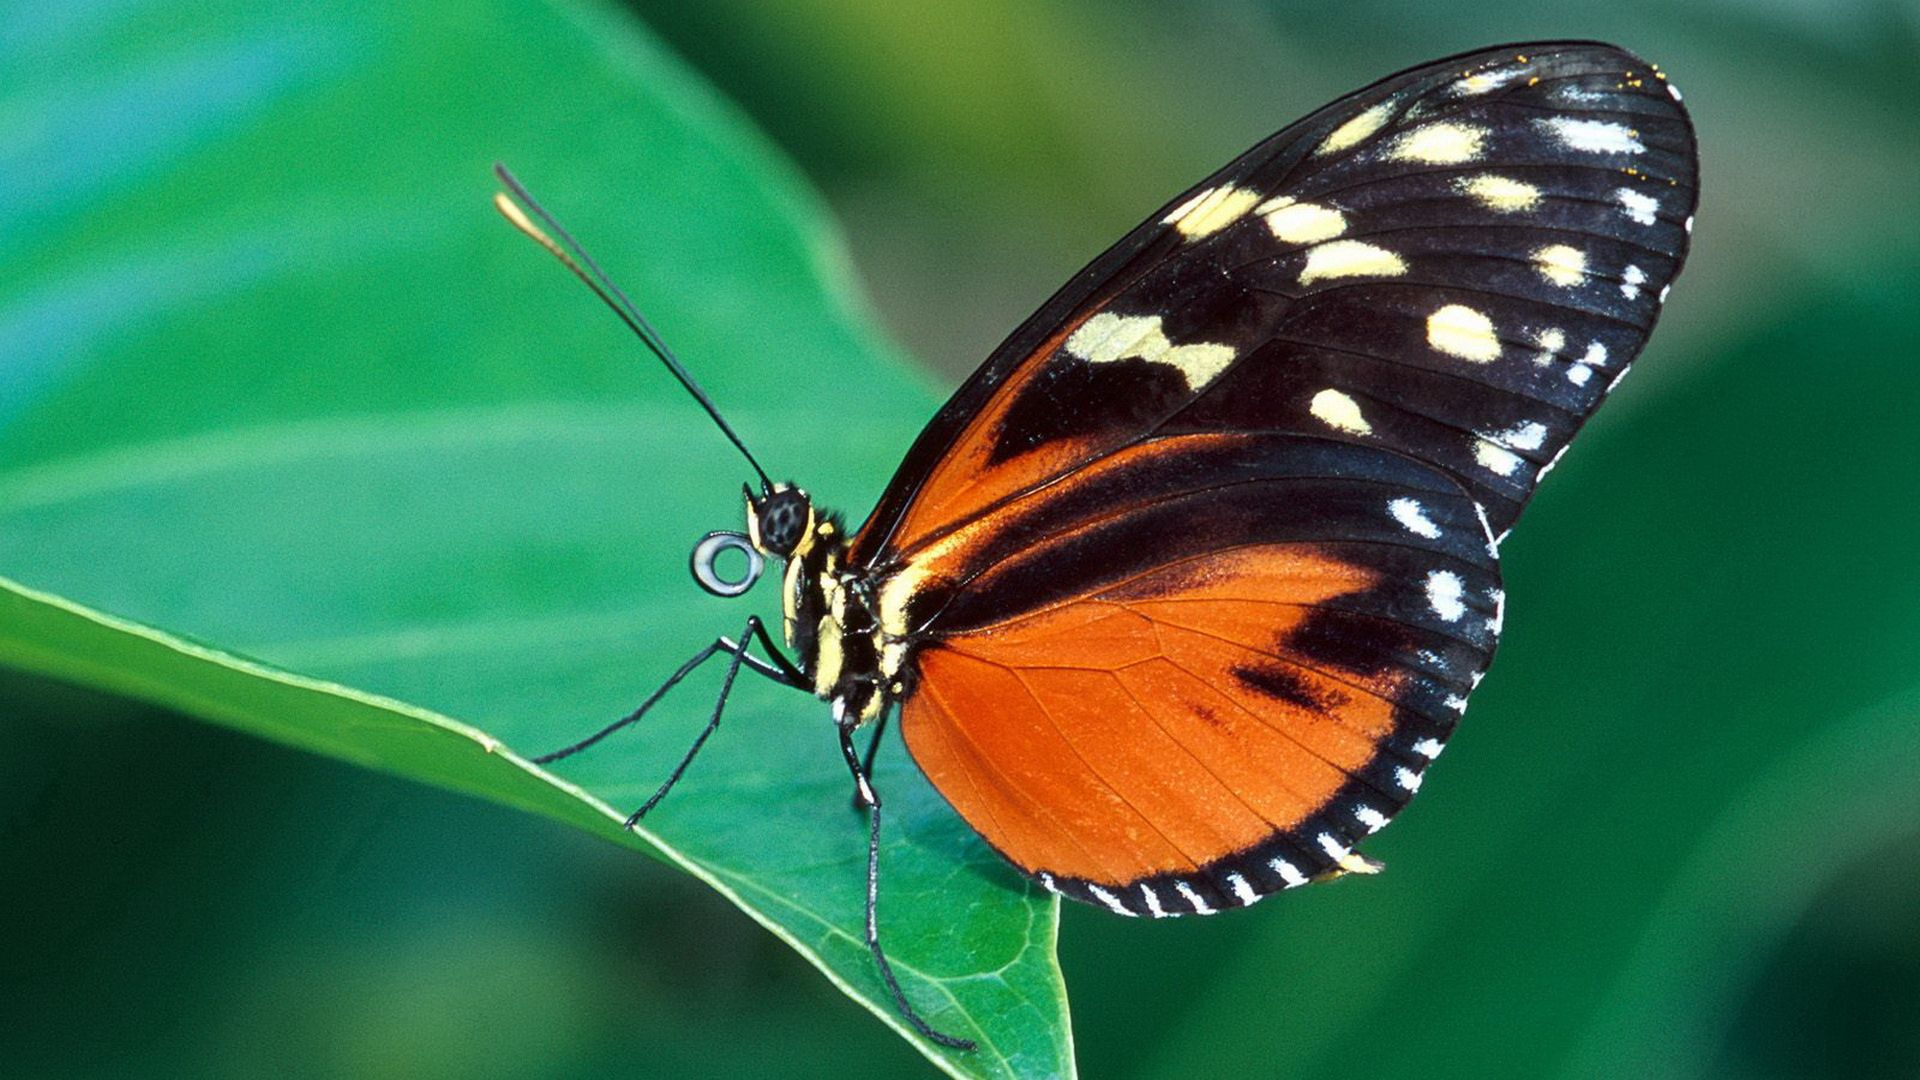 125529 Screensavers and Wallpapers Butterfly for phone. Download Grass, Leaves, Patterns, Macro, Butterfly, Wings pictures for free